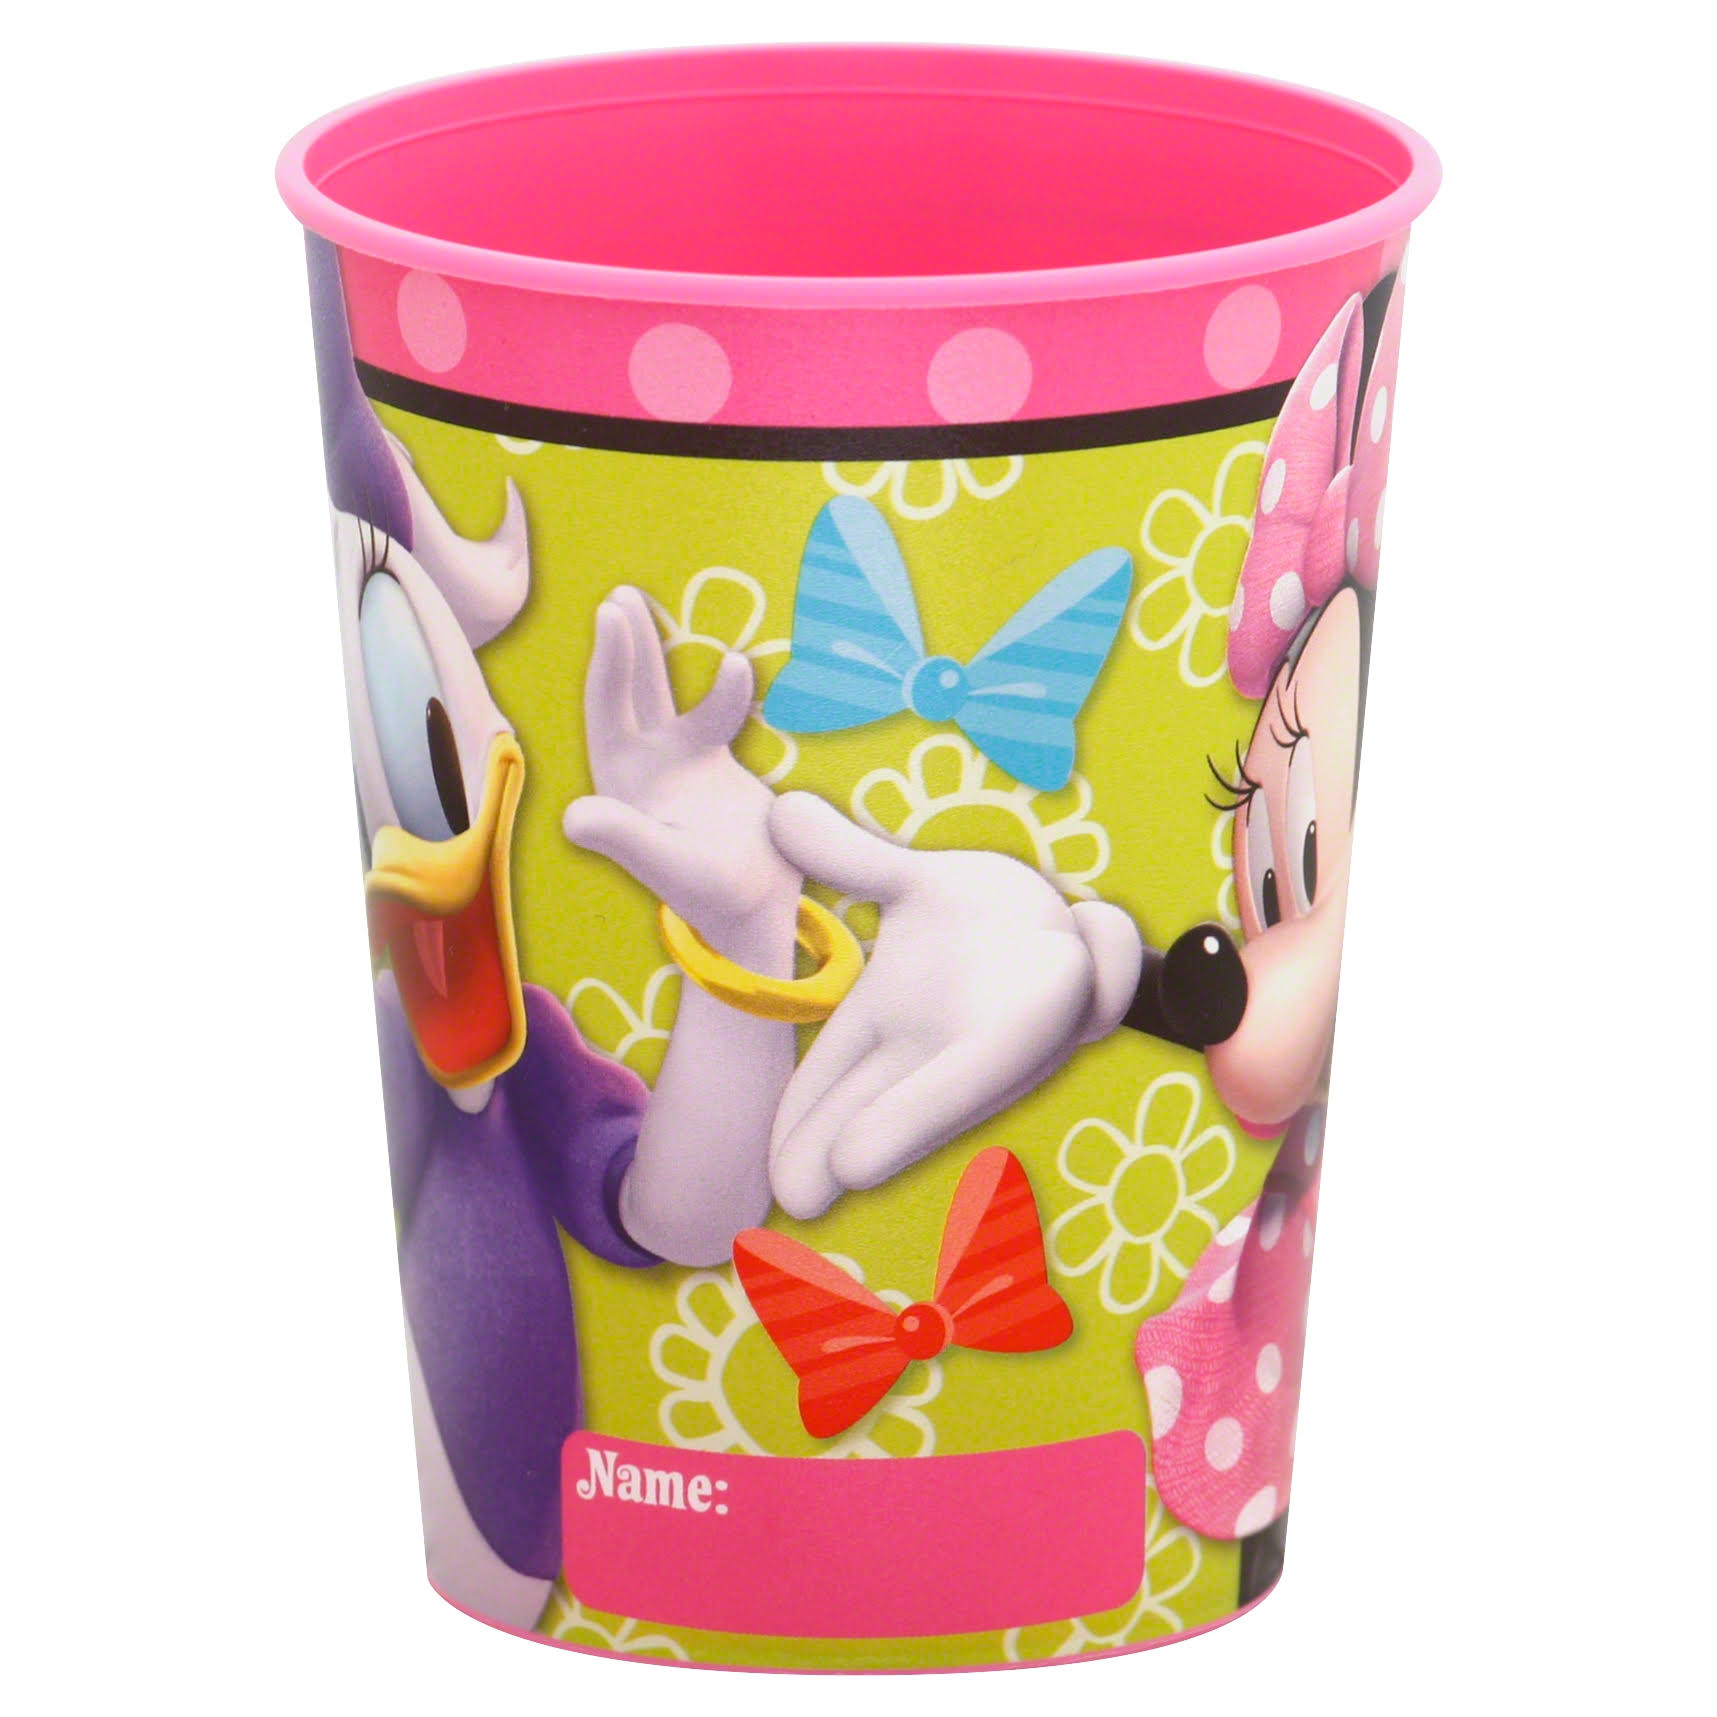 Minnie Mouse Favor Cup